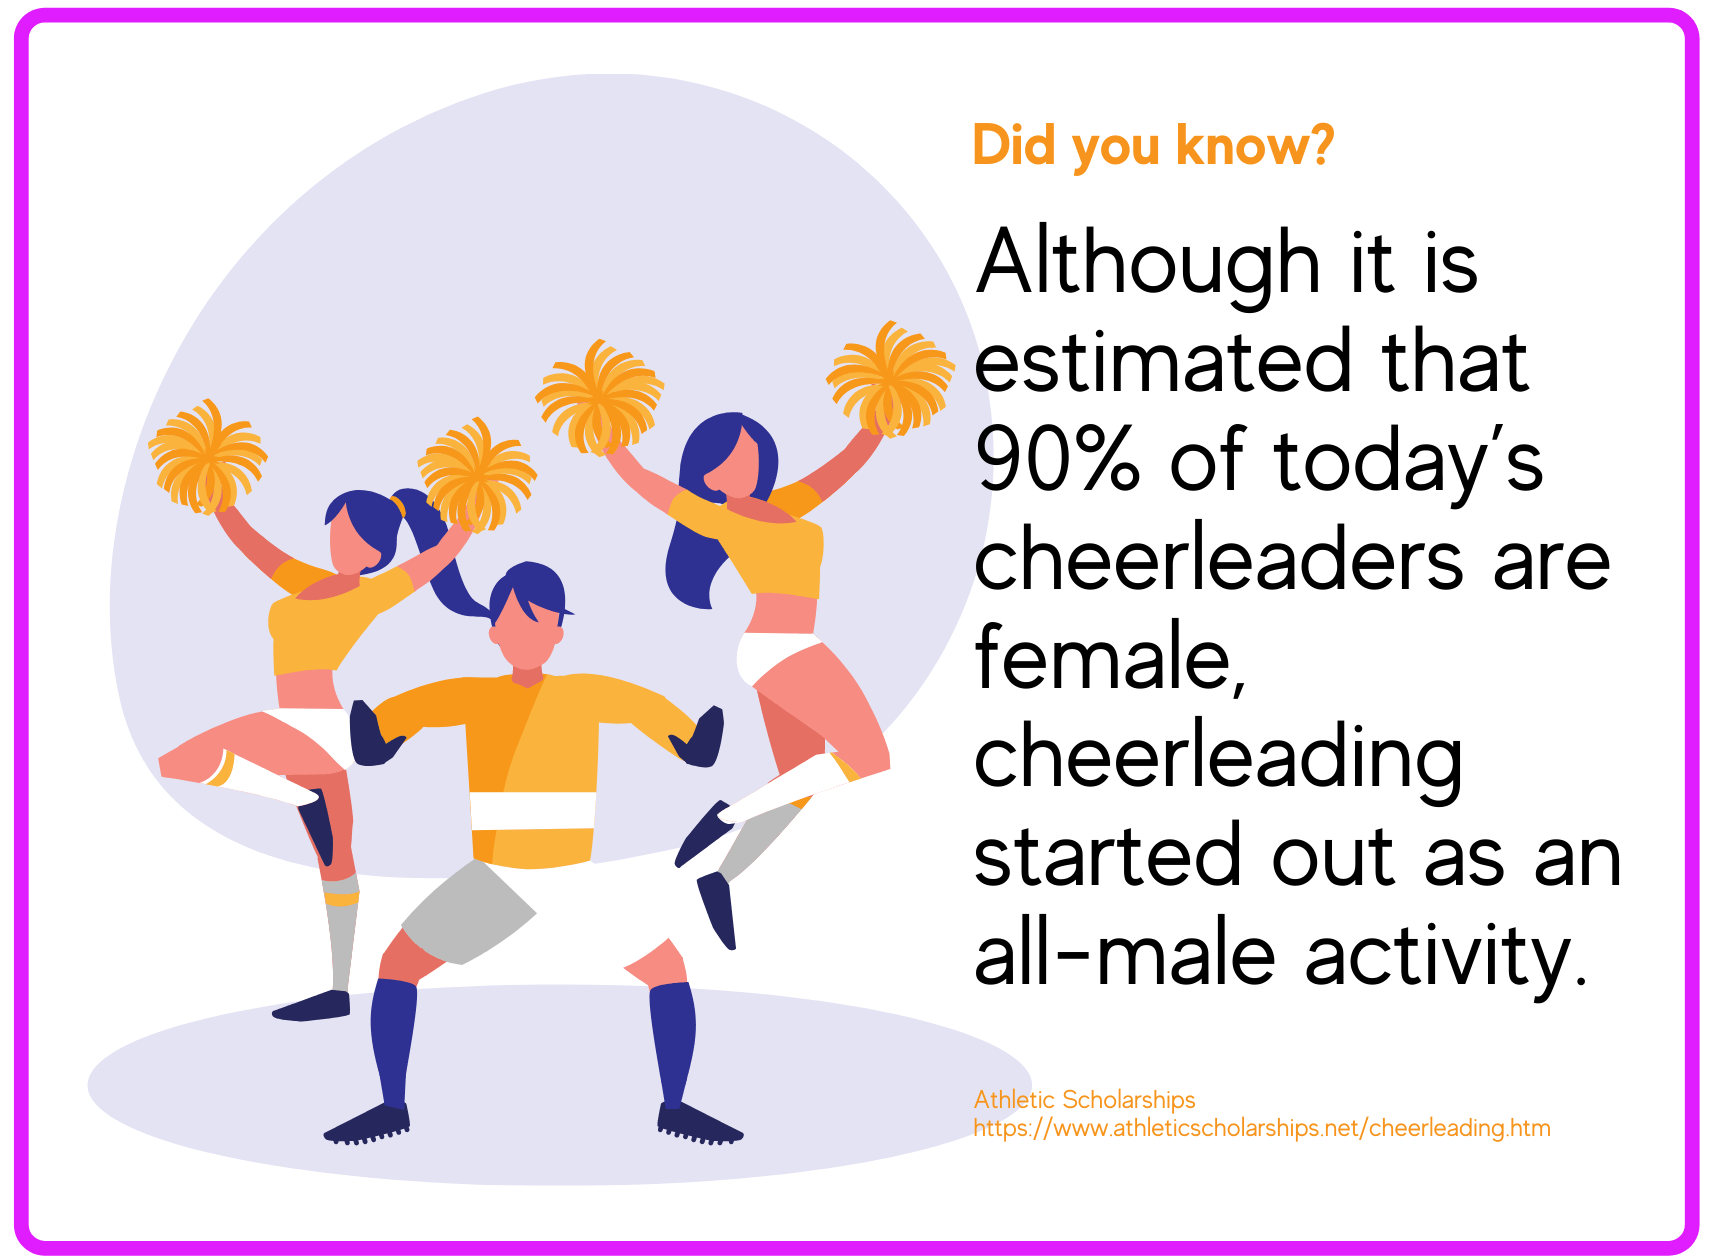 Cheerleading Scholarships fact 5